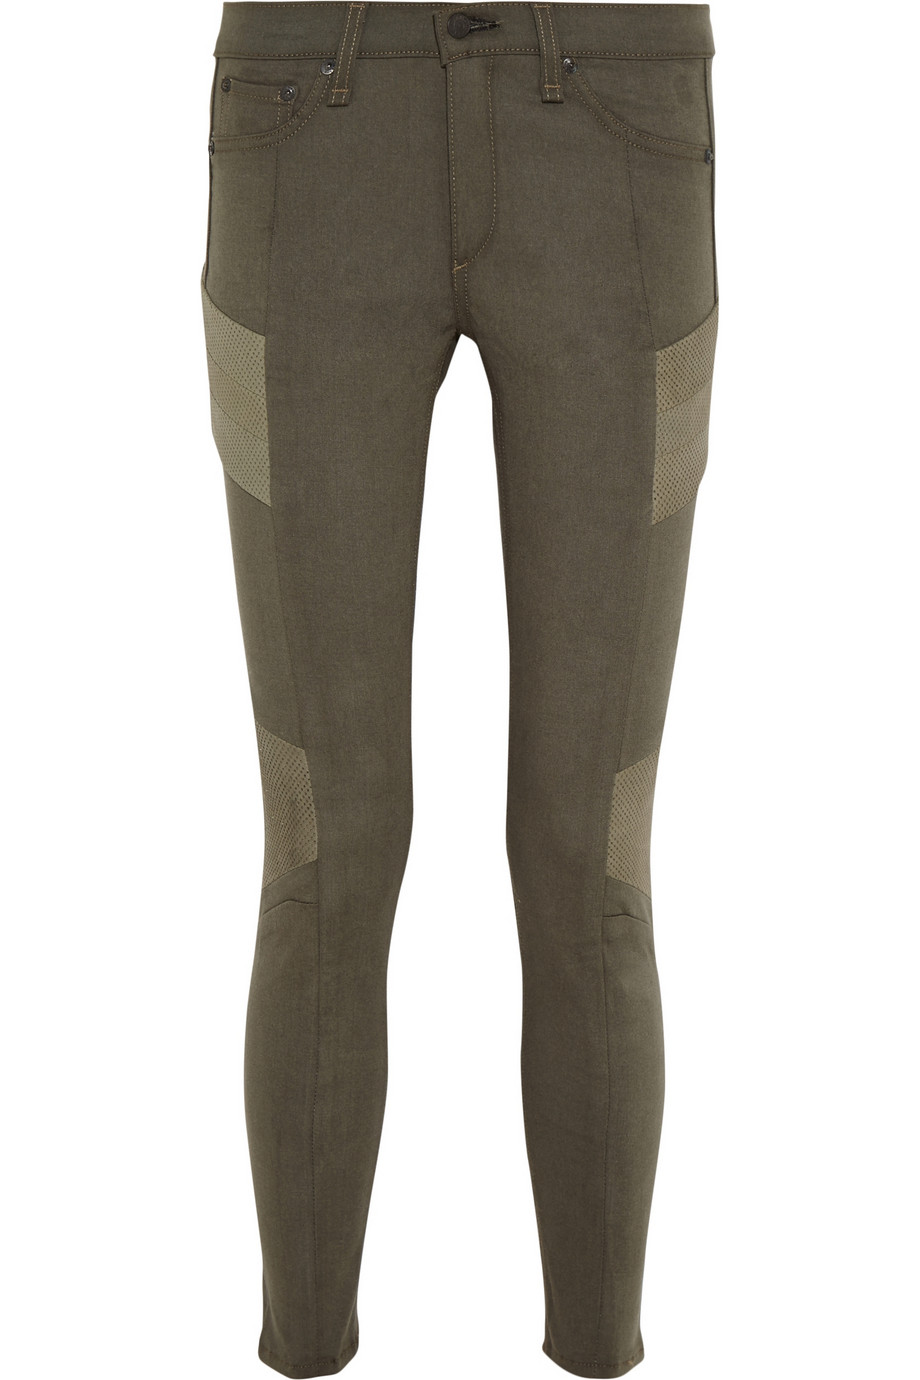 Rag & bone JEAN Halifax paneled low-rise skinny jeans – 48% at THE OUTNET.COM